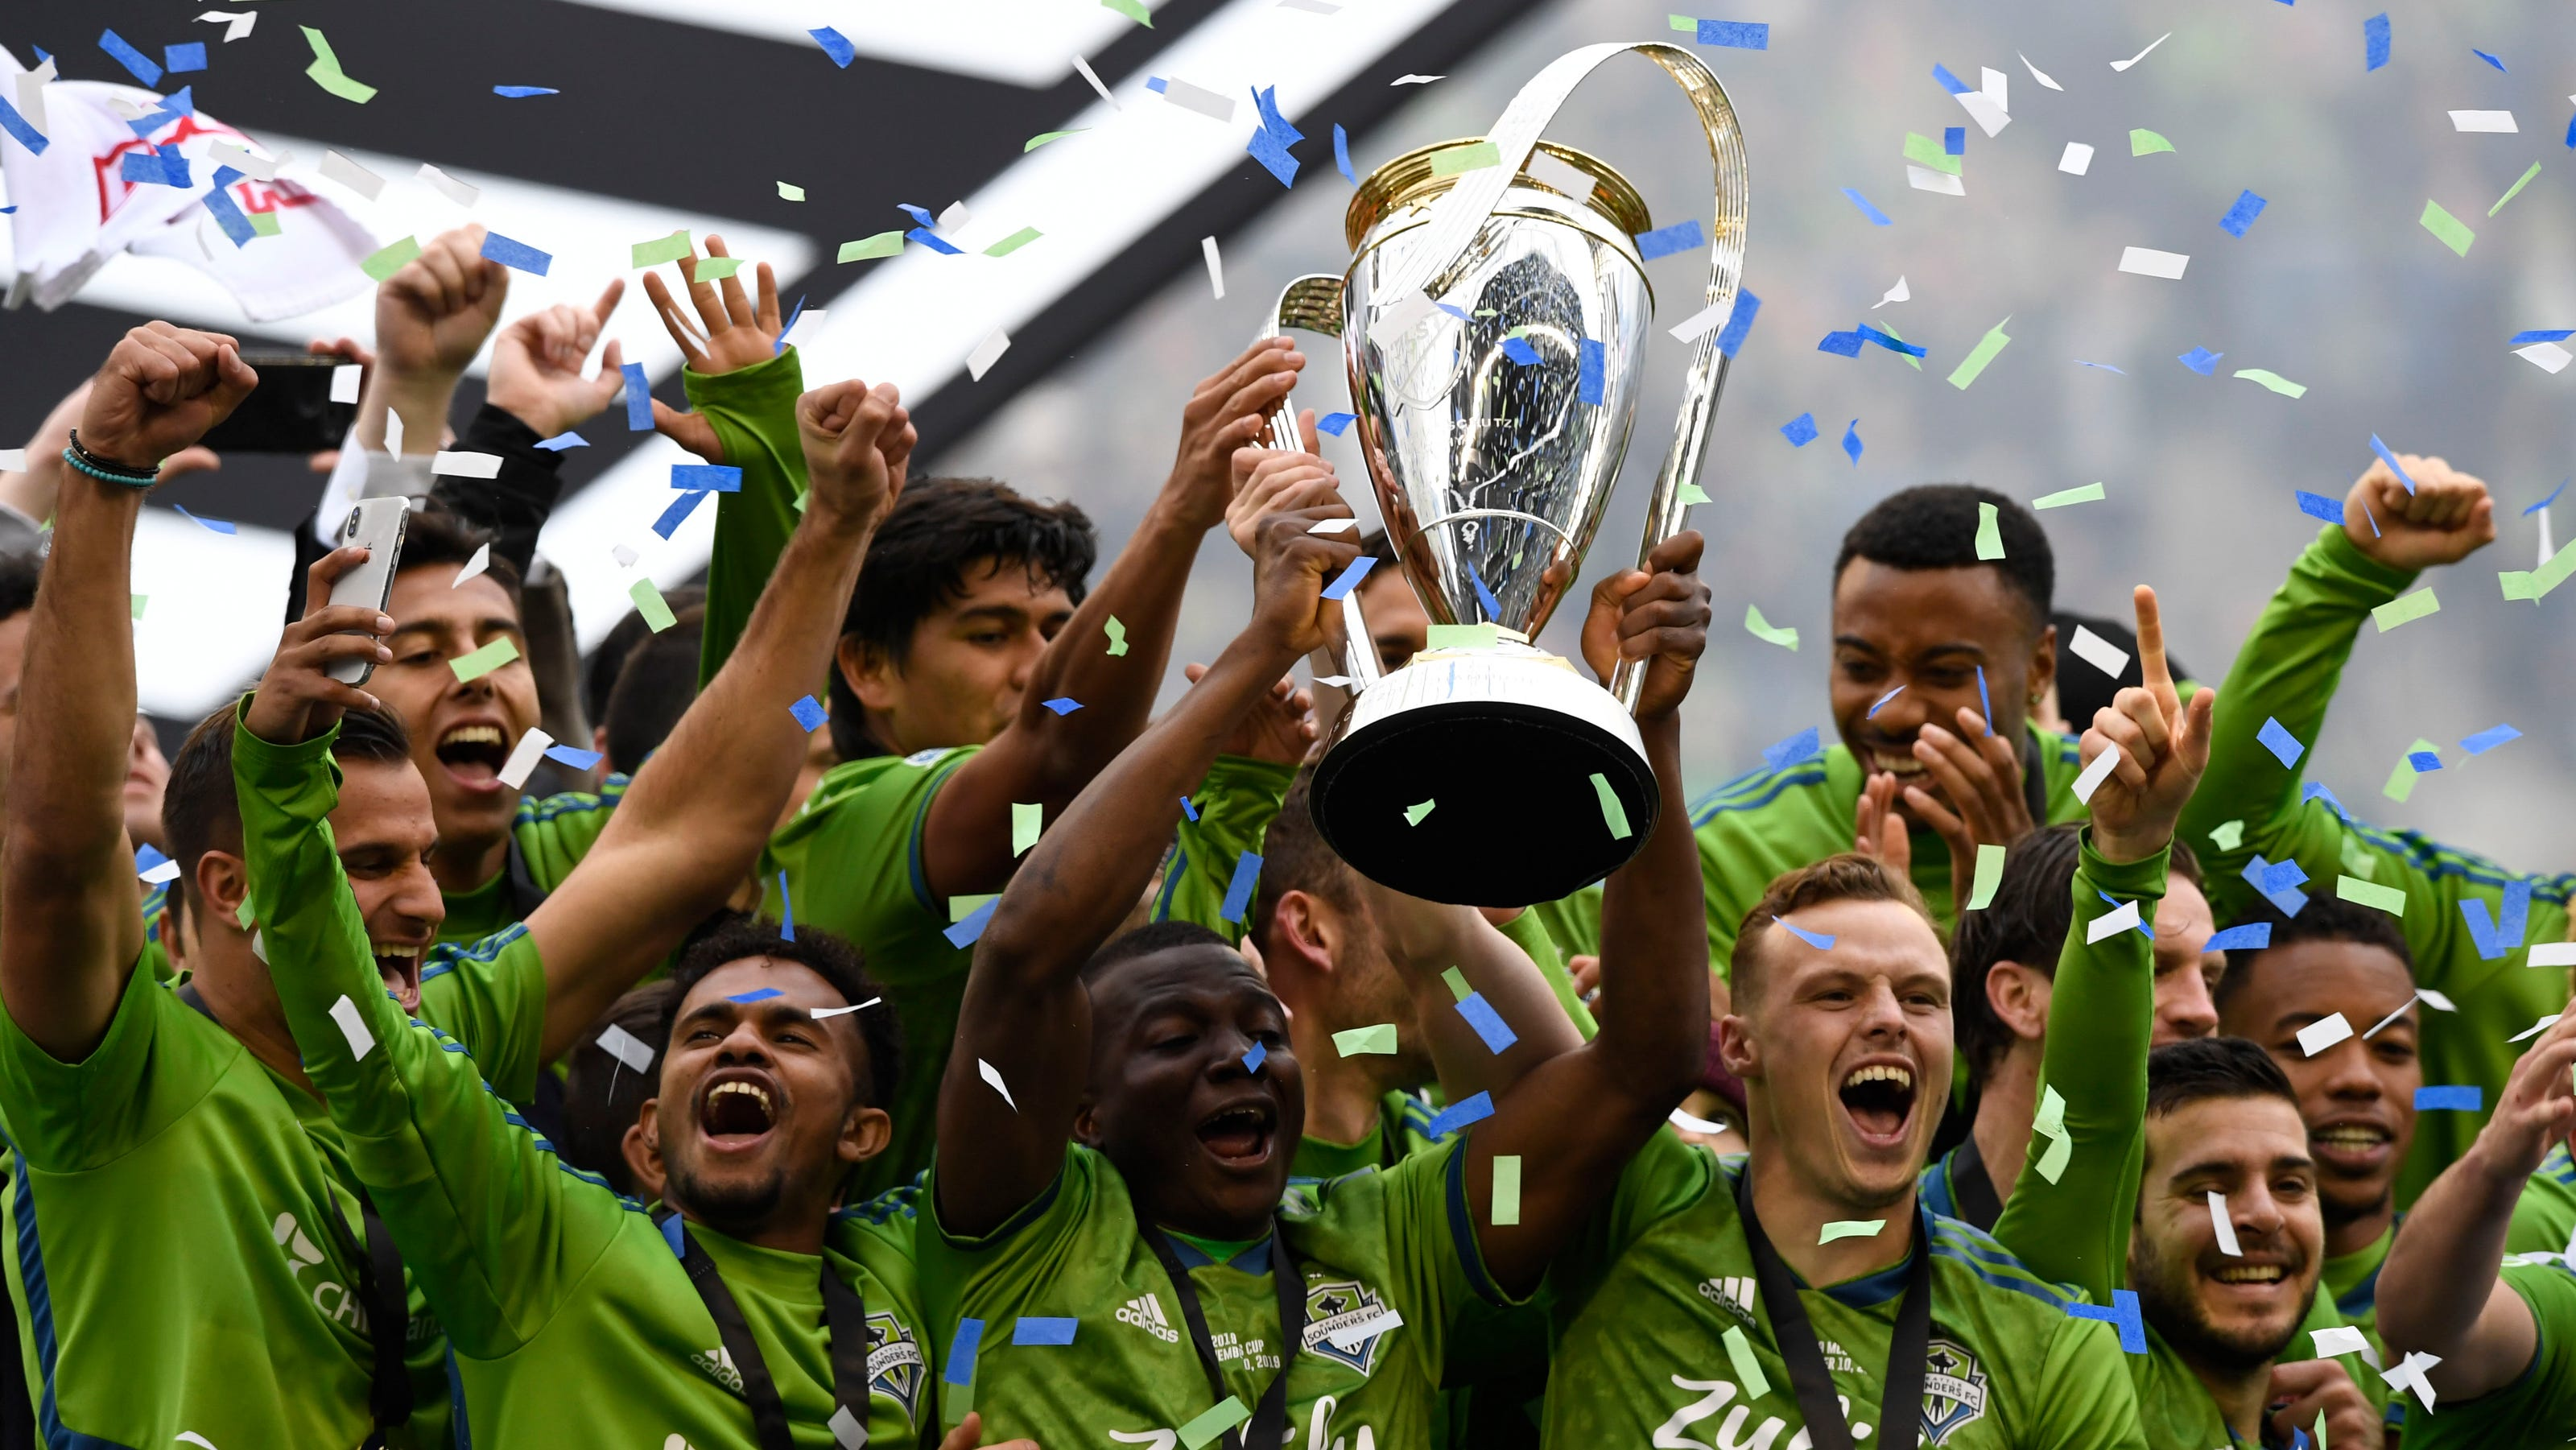 mls cup 2019 seattle sounders fc top toronto fc in championship game mls cup 2019 seattle sounders fc top